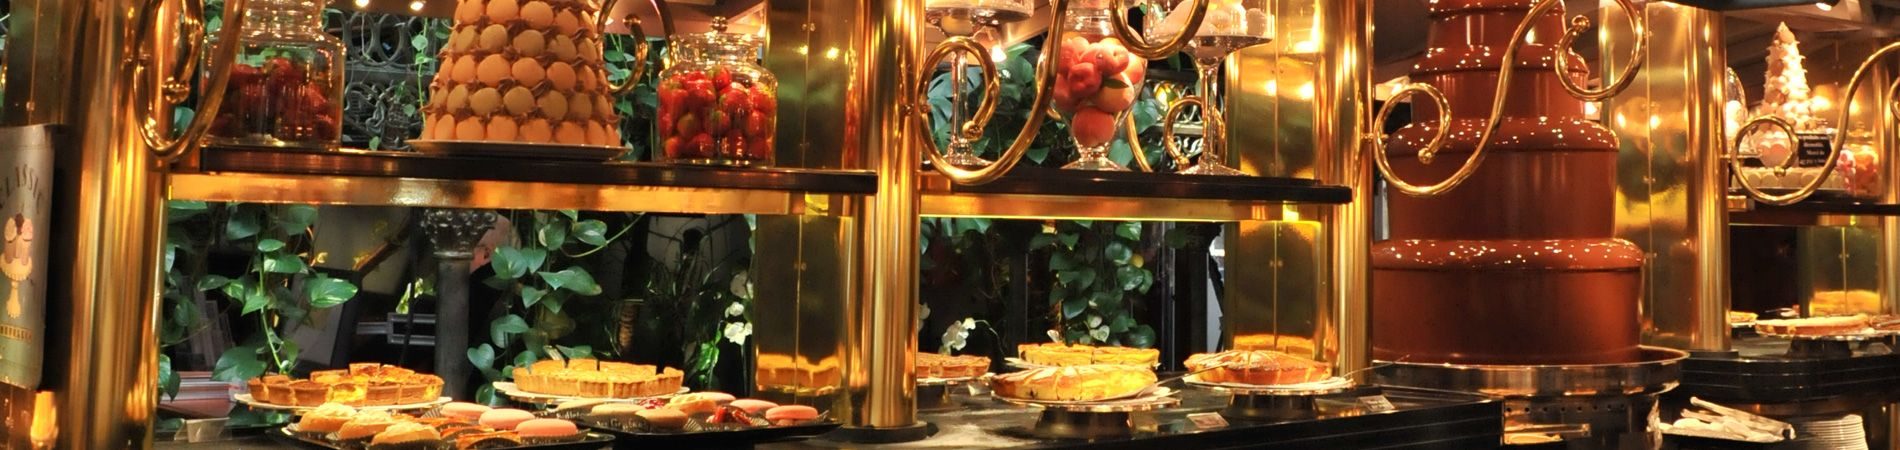 fuente de chocolate de Grands Buffets